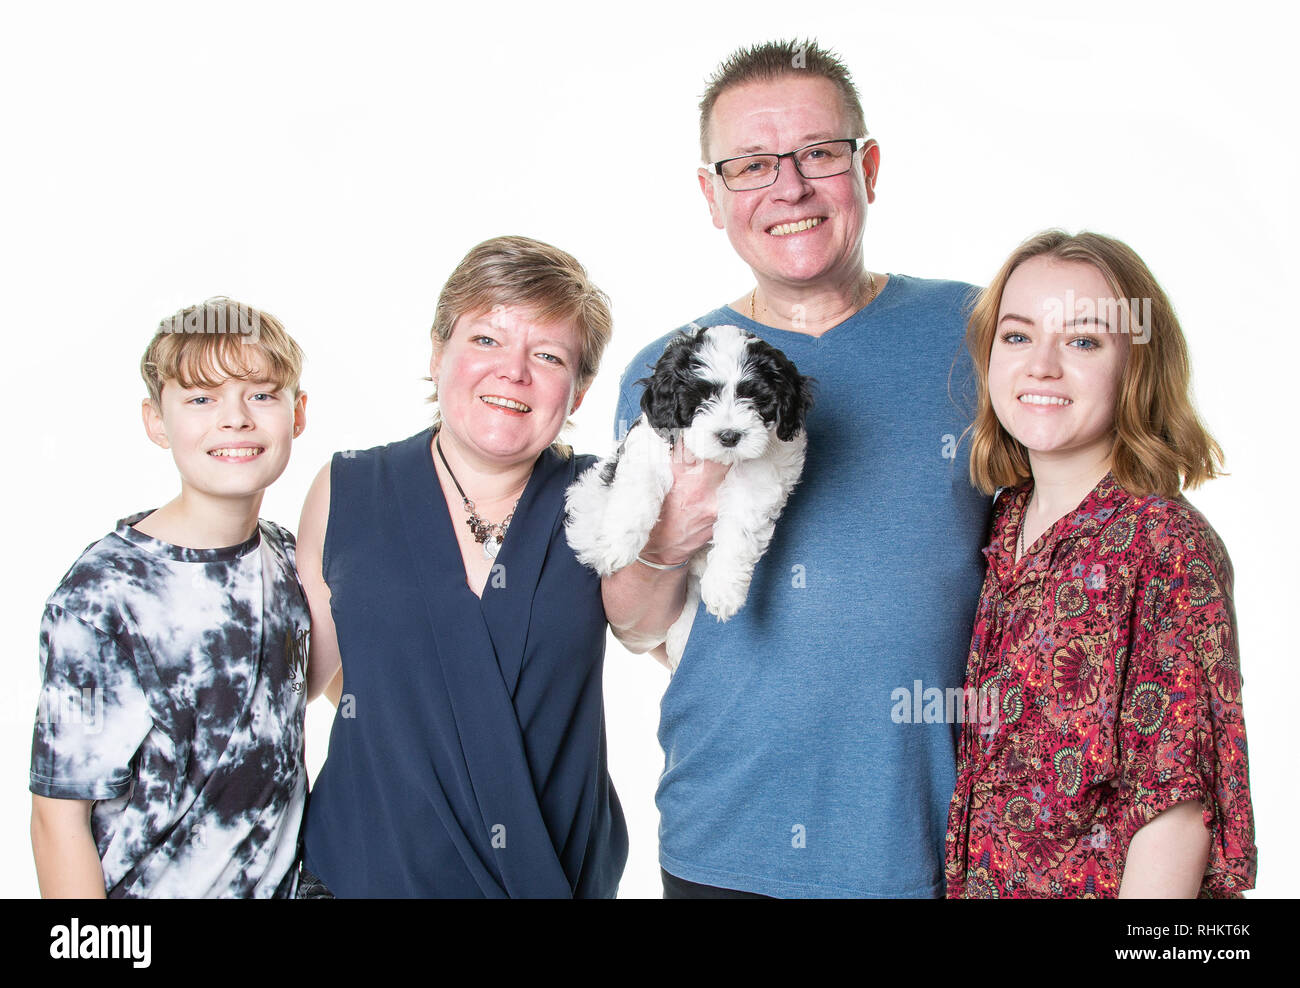 Family with dog - Stock Image